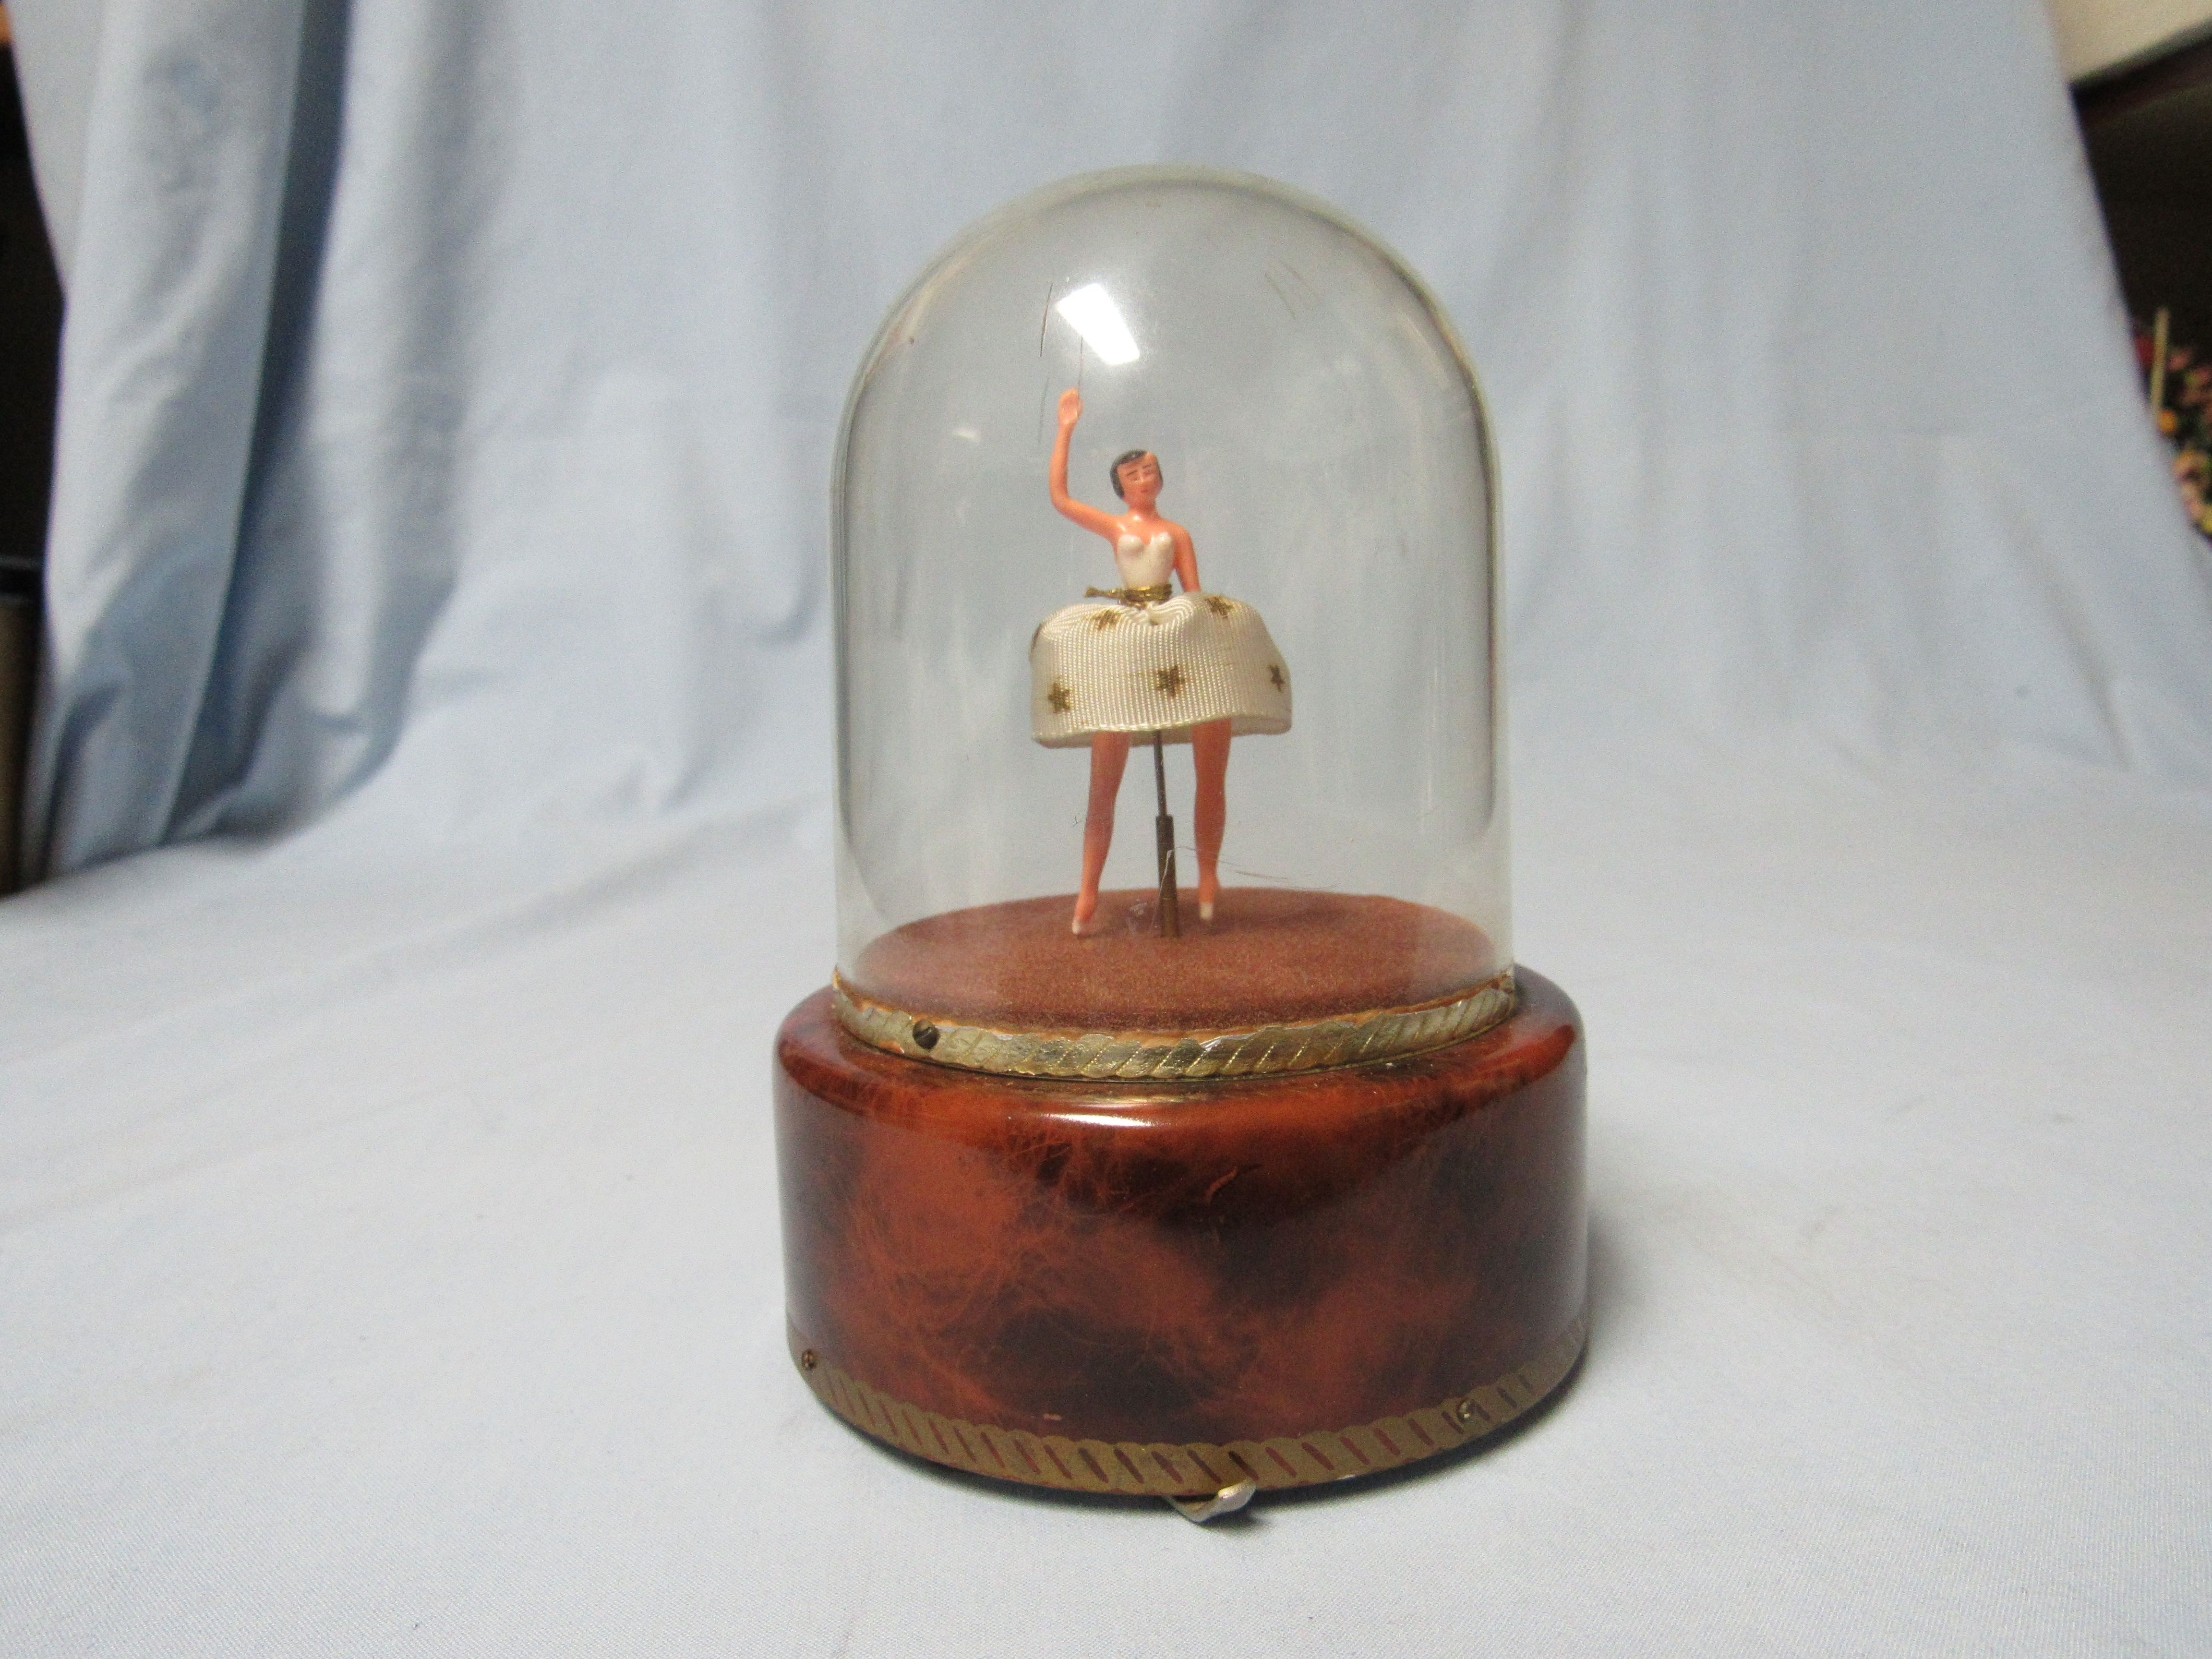 This Is A Lovely Vintage 1950s Dancing Ballerina Music Box By The